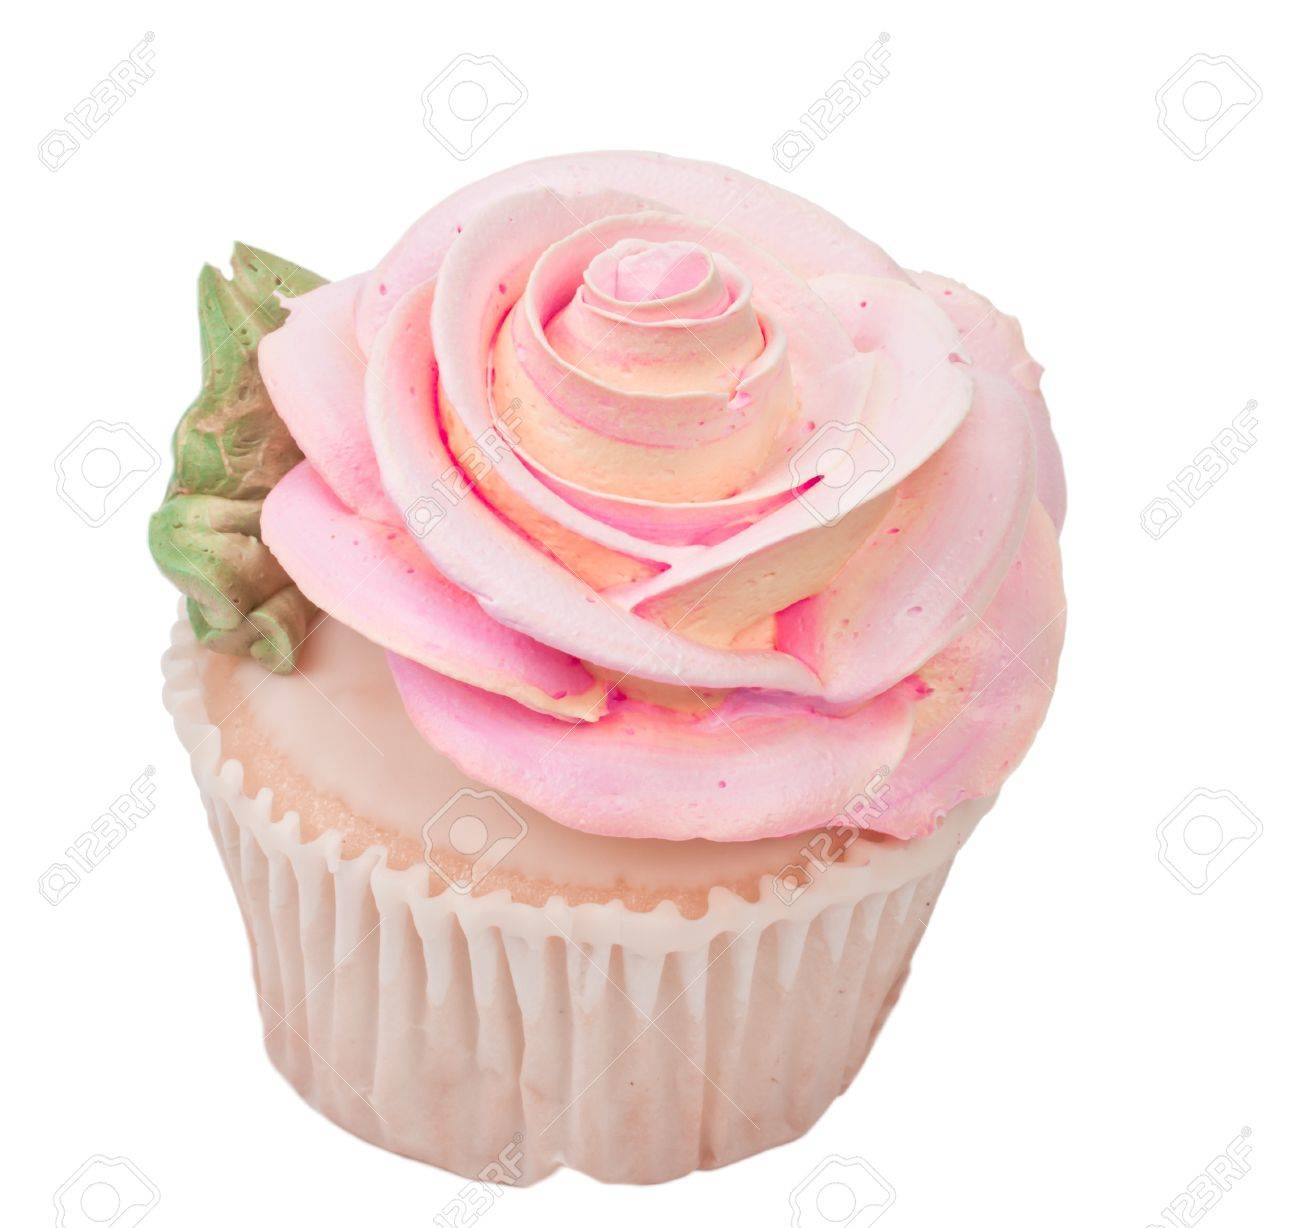 Isolated Cupcake Shape Like A Rose On White Background With Green Leaf Stock Photo